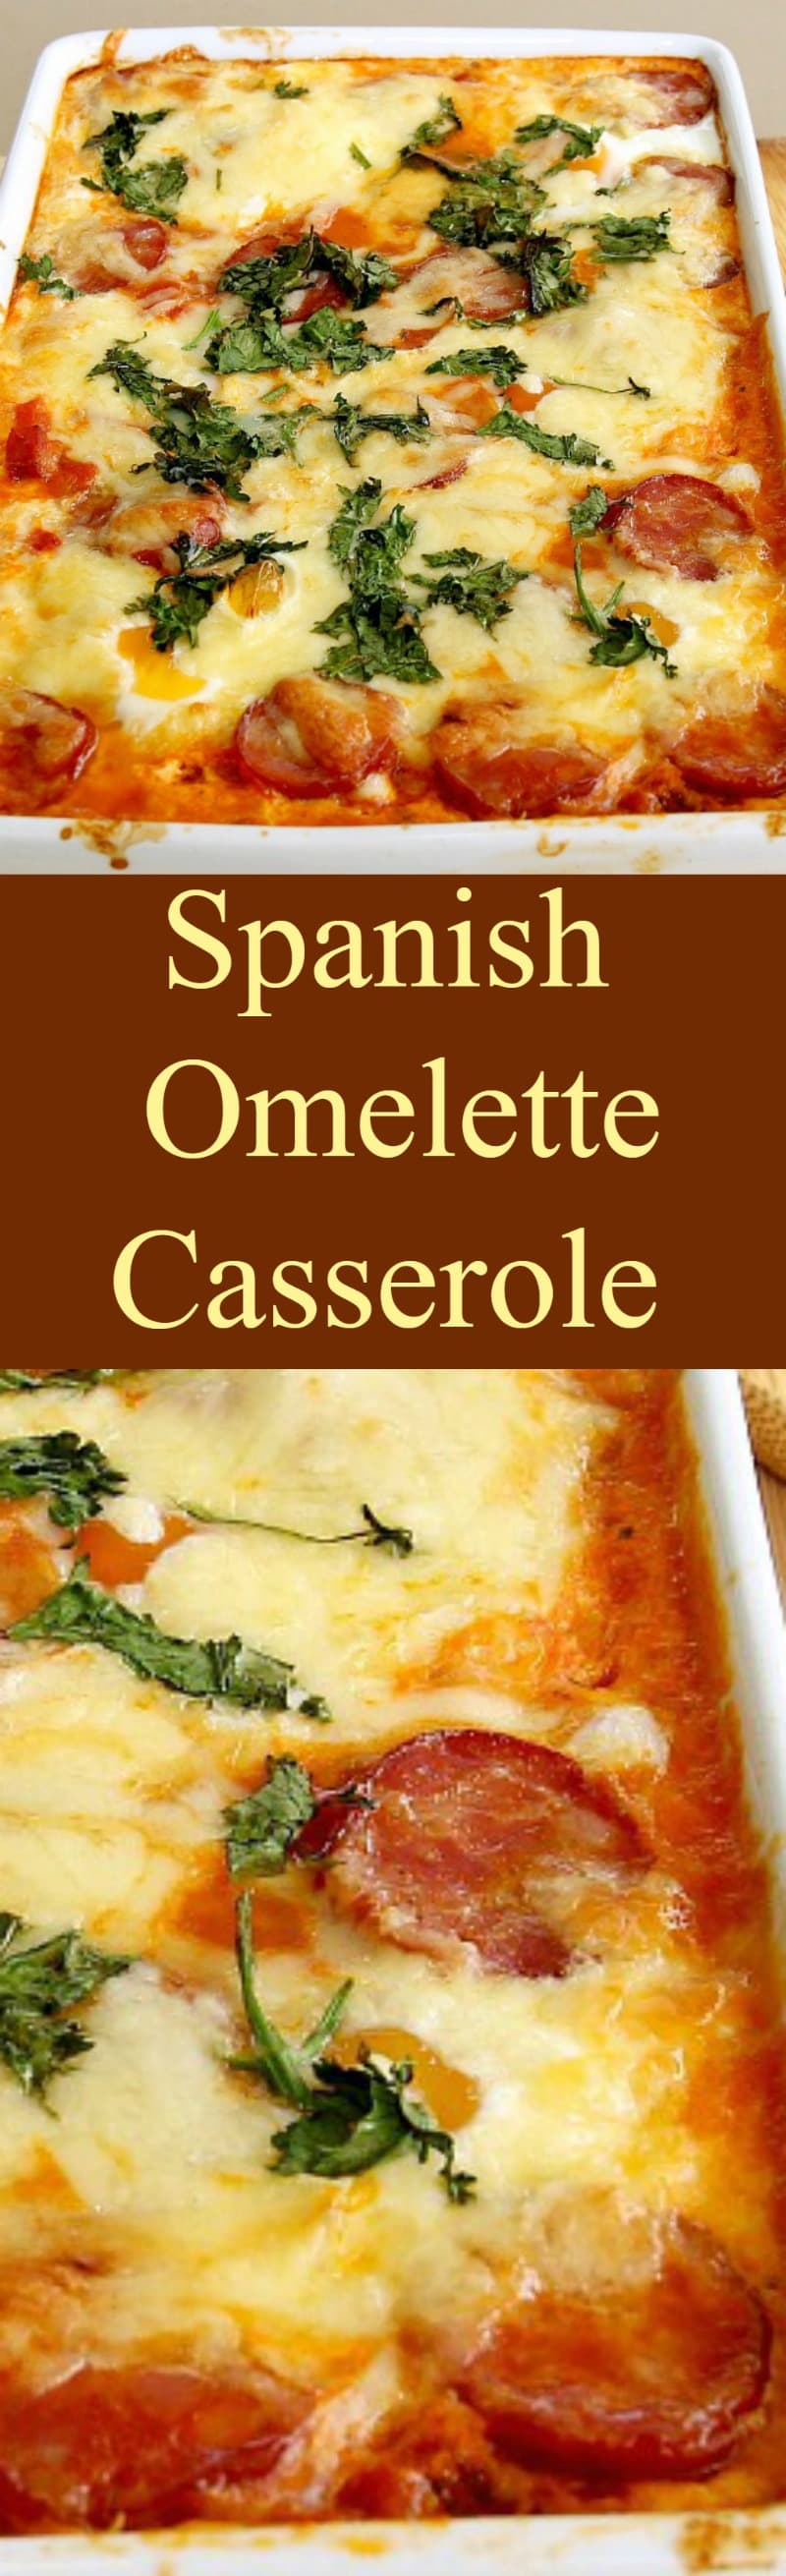 Spanish omelette casserole lovefoodies - Potatoes choose depending food want prepare ...